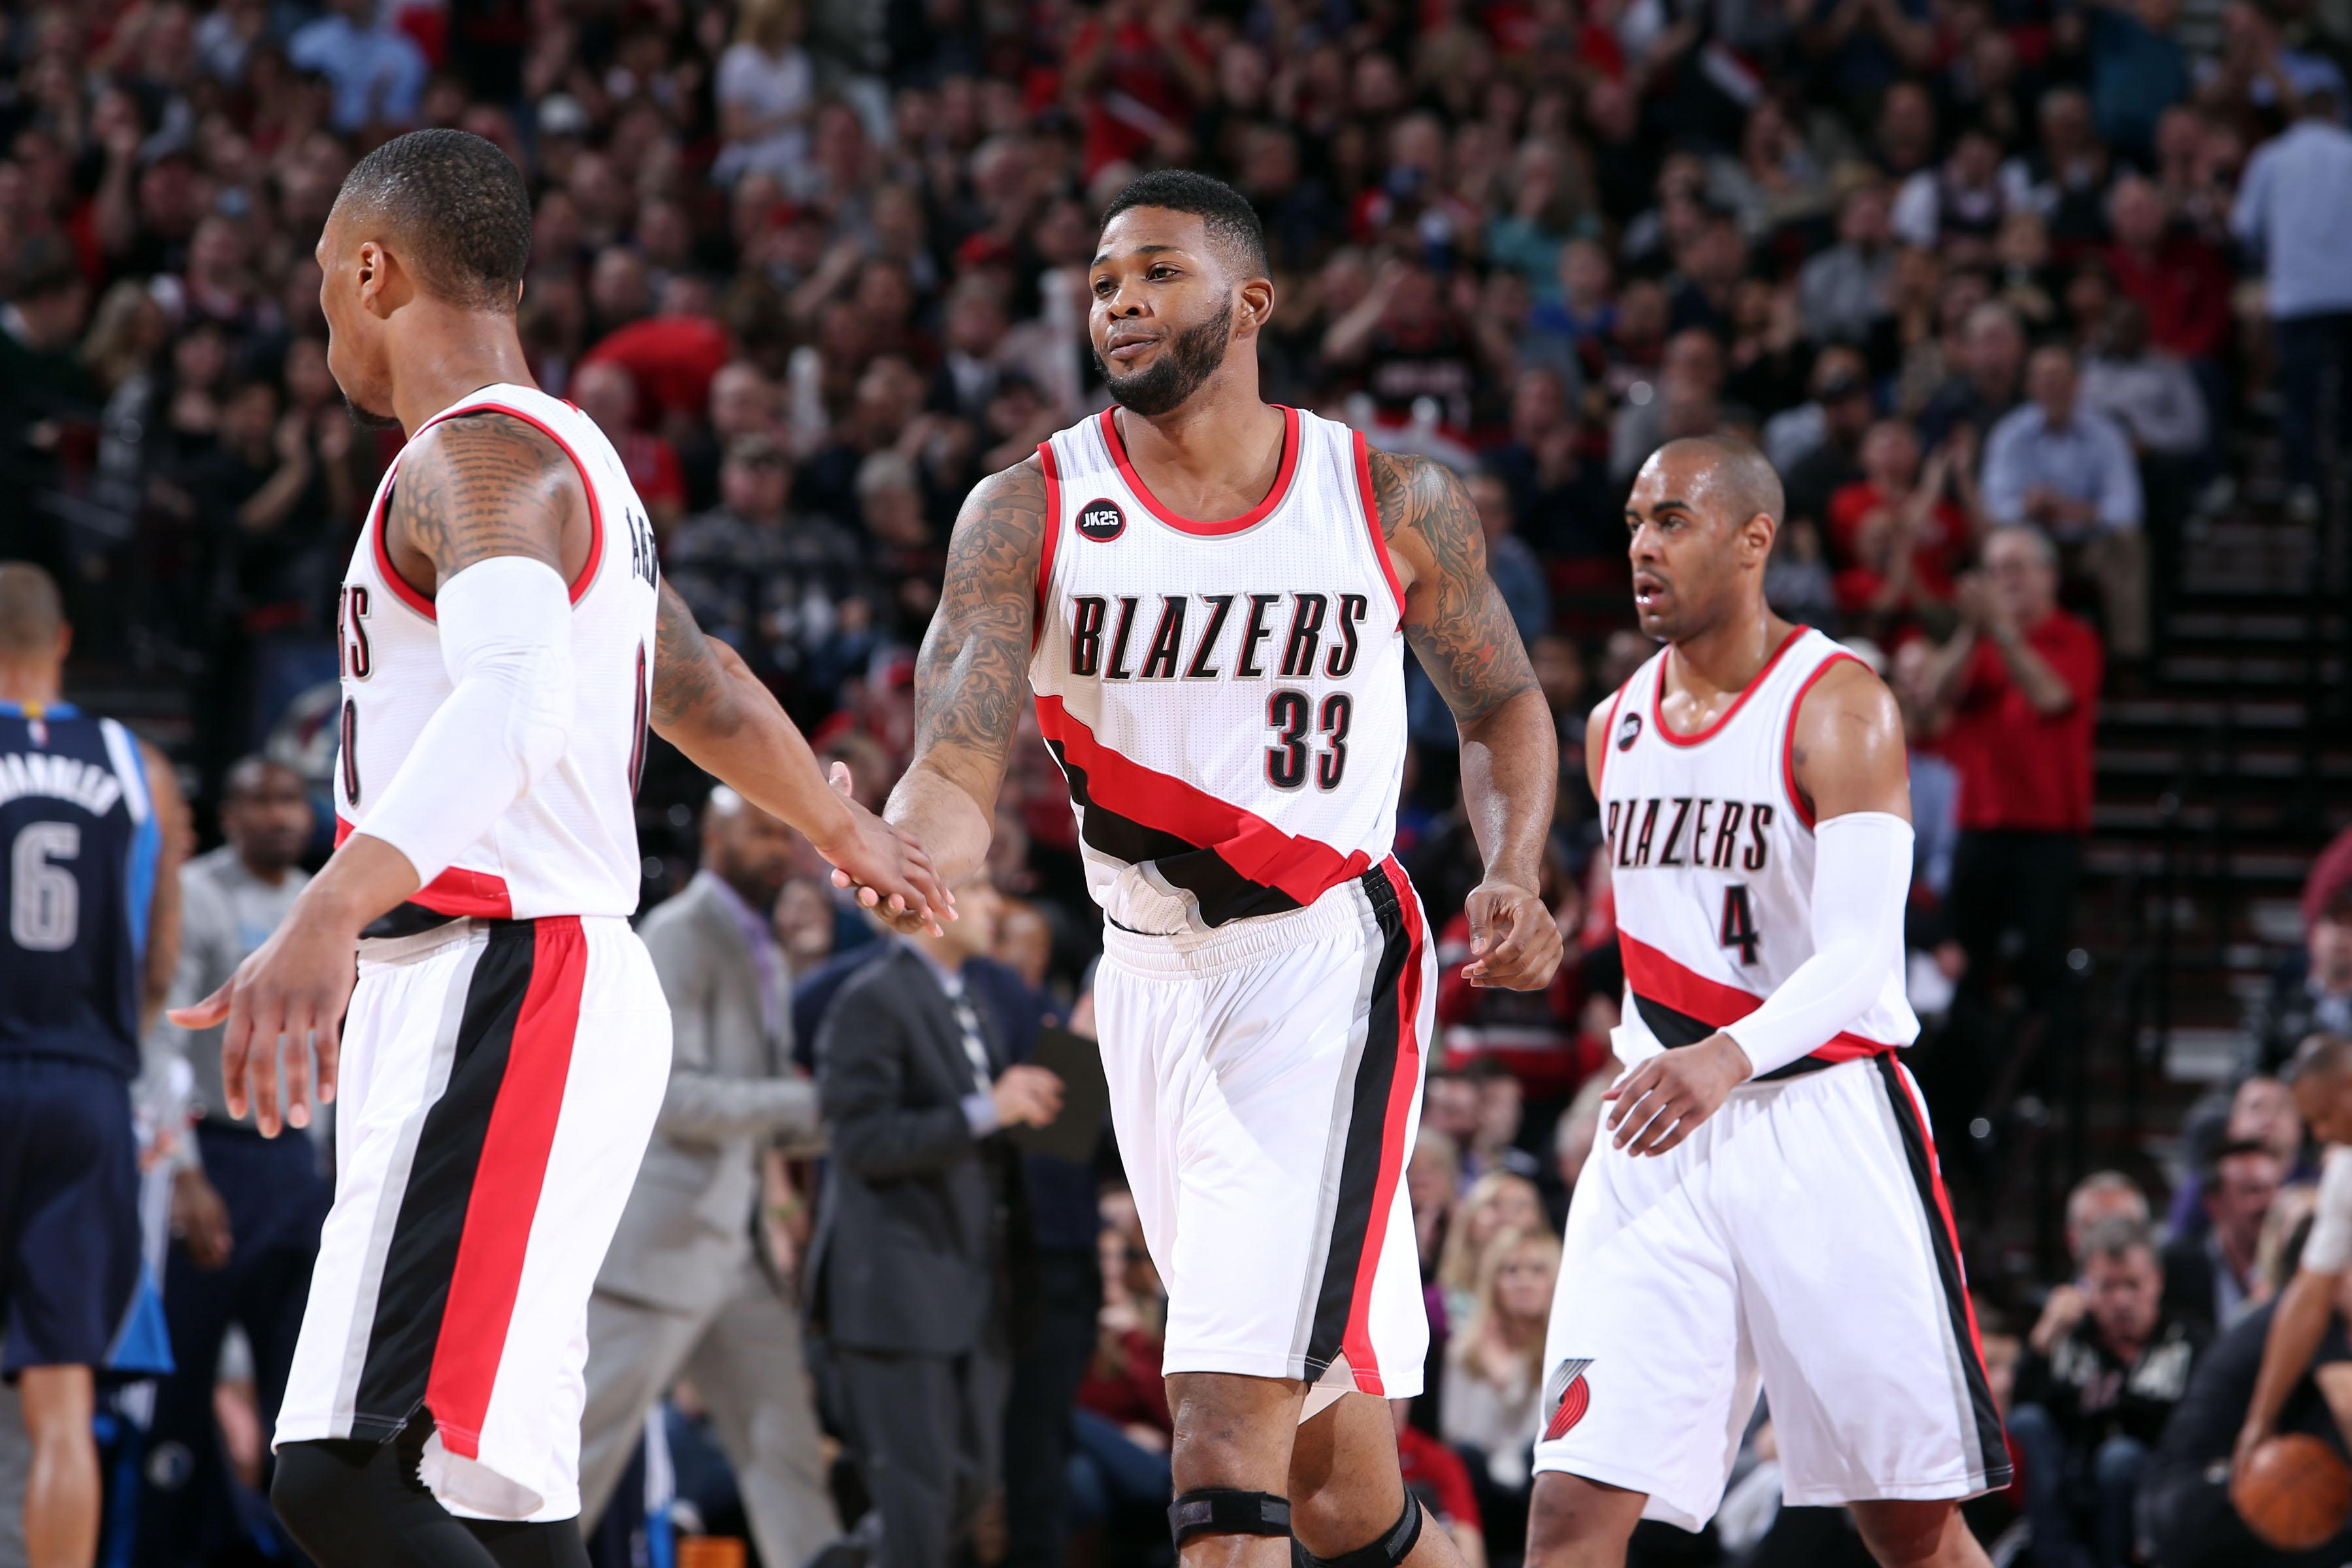 Blazers win fifth straight with 94-75 victory over Mavericks